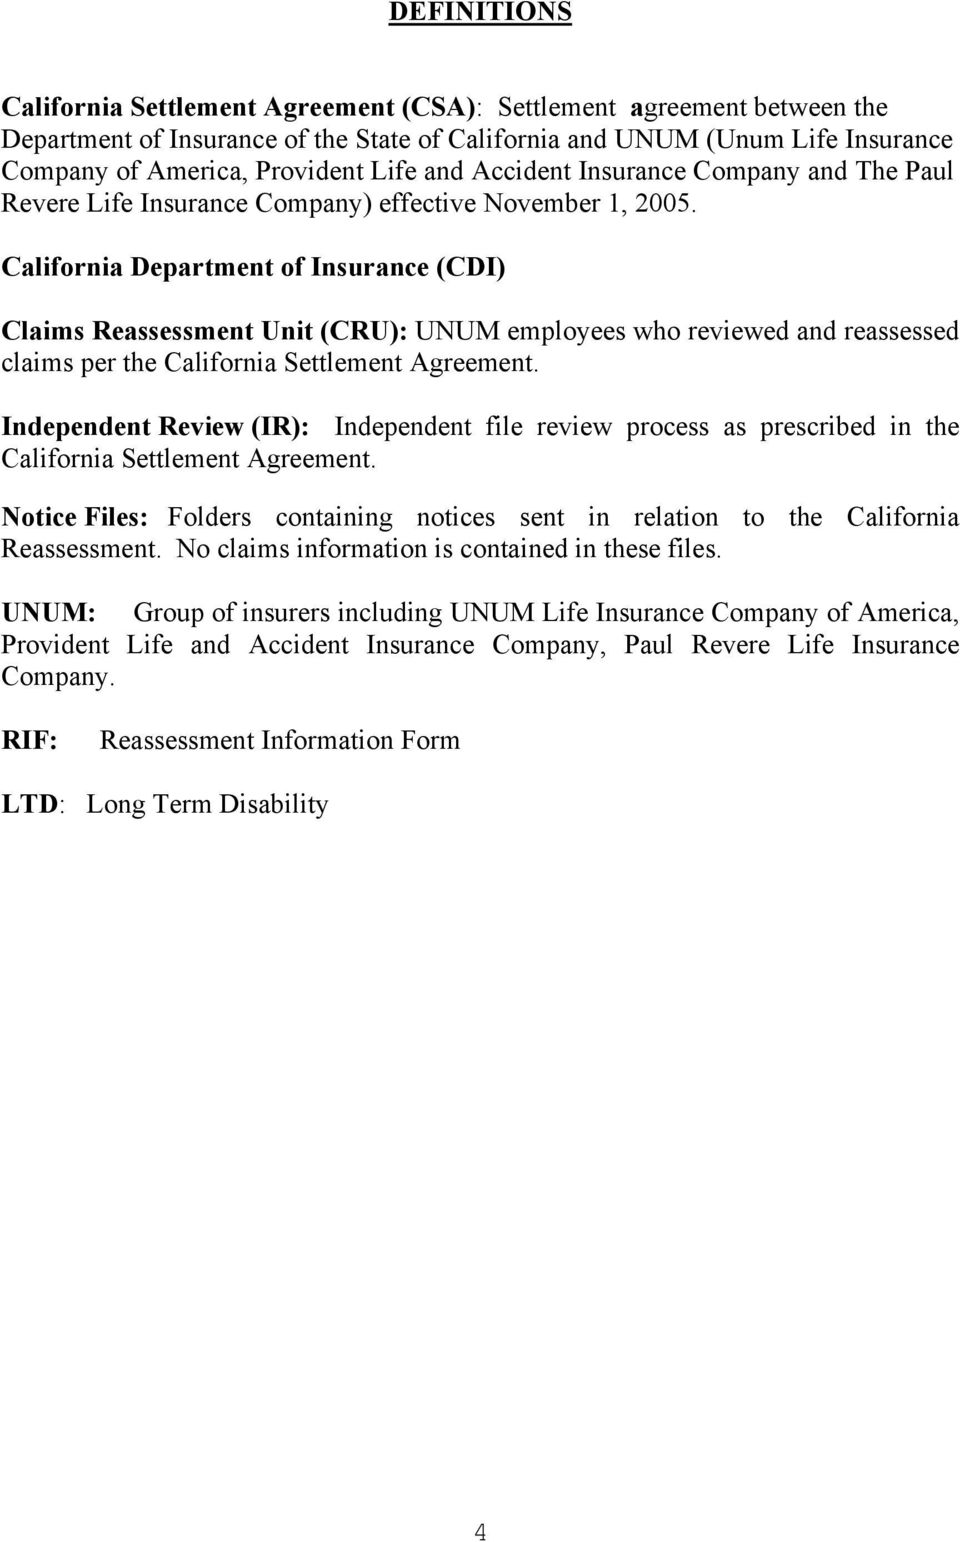 California Department of Insurance (CDI) Claims Reassessment Unit (CRU): UNUM employees who reviewed and reassessed claims per the California Settlement Agreement.